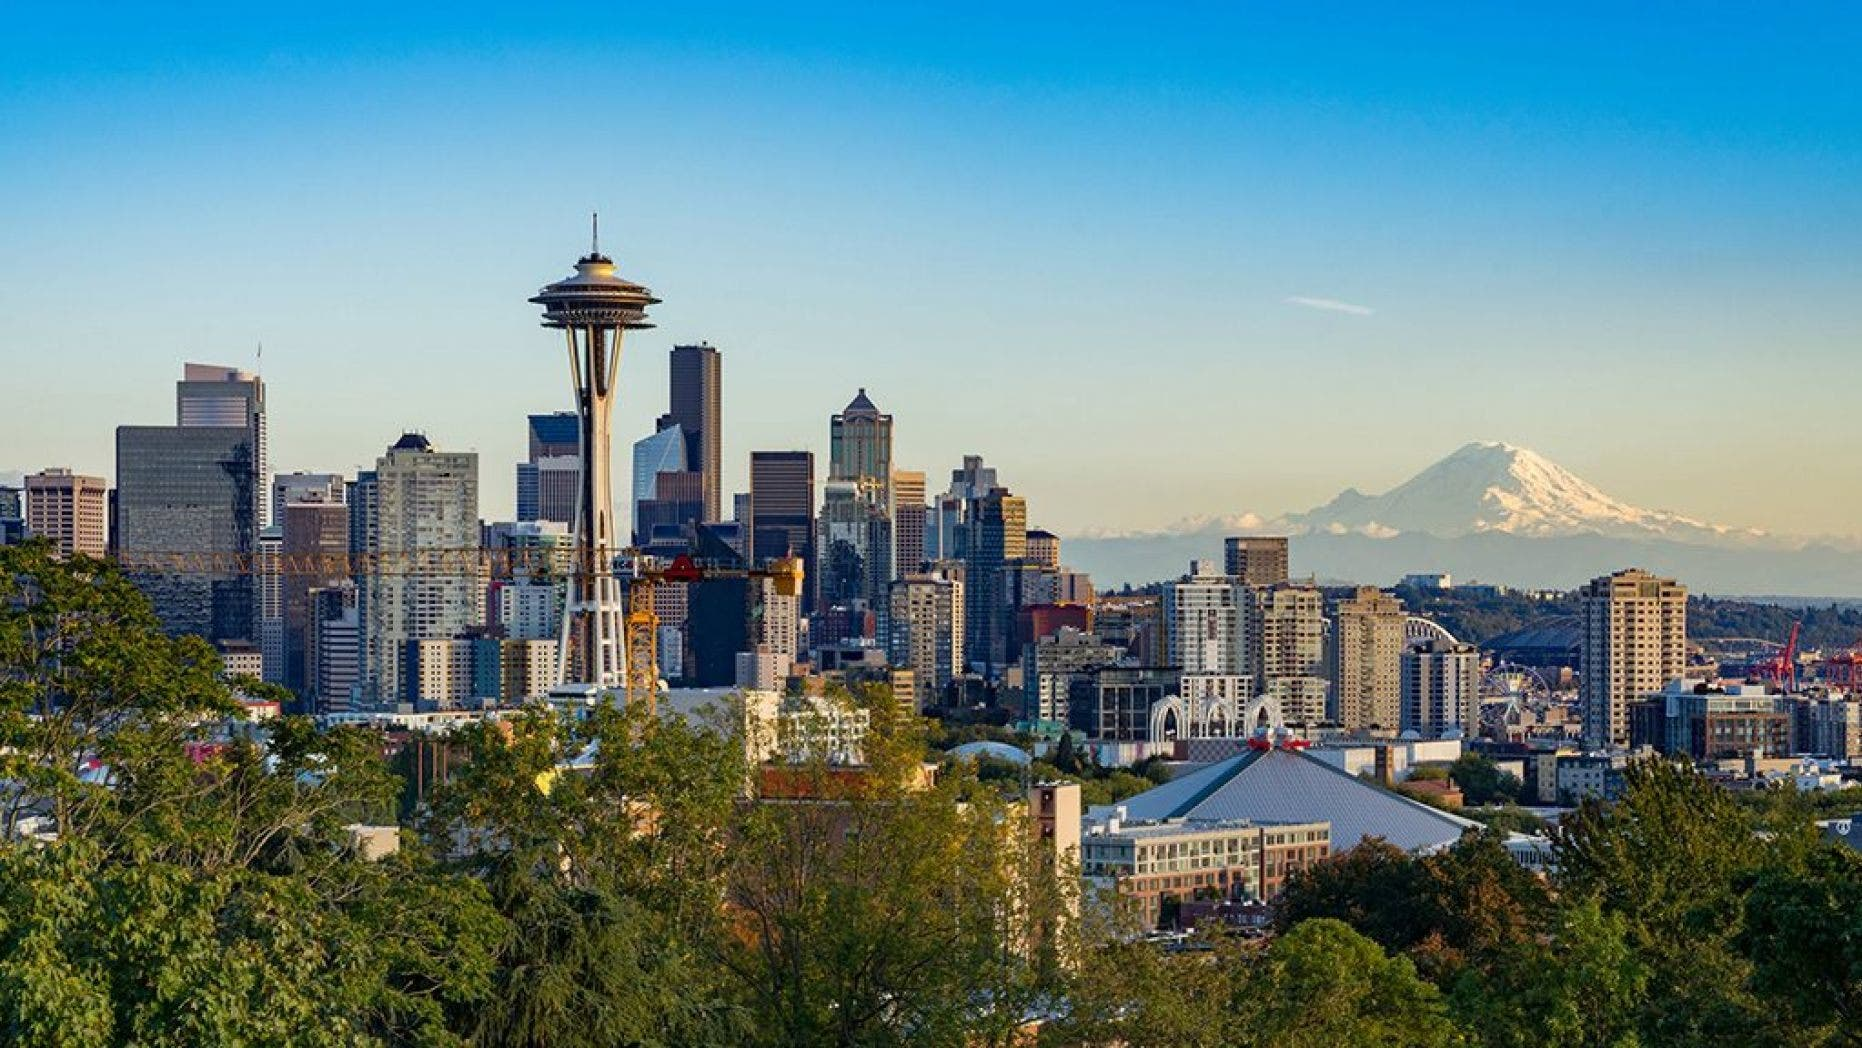 Microsoft Will Loan Up To $500 Million To Address Seattle's Housing Crisis